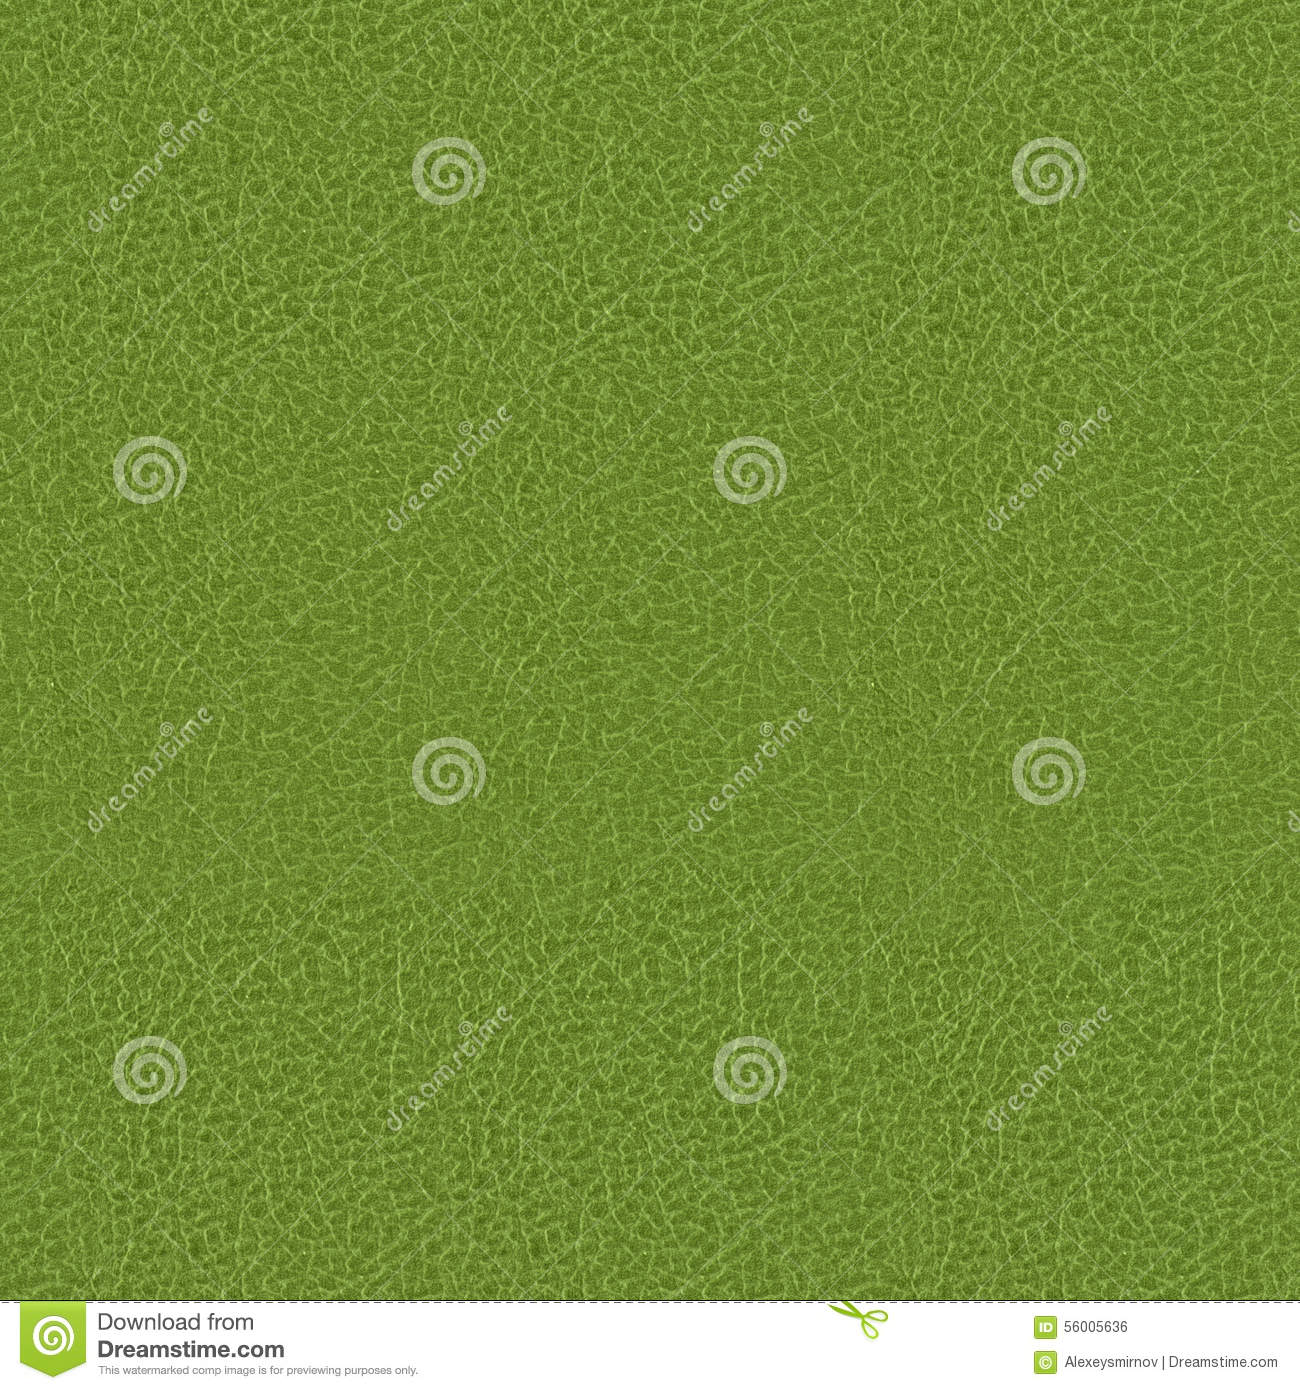 Book Cover Texture Ds Max : Green leatherette book cover seamless texture background